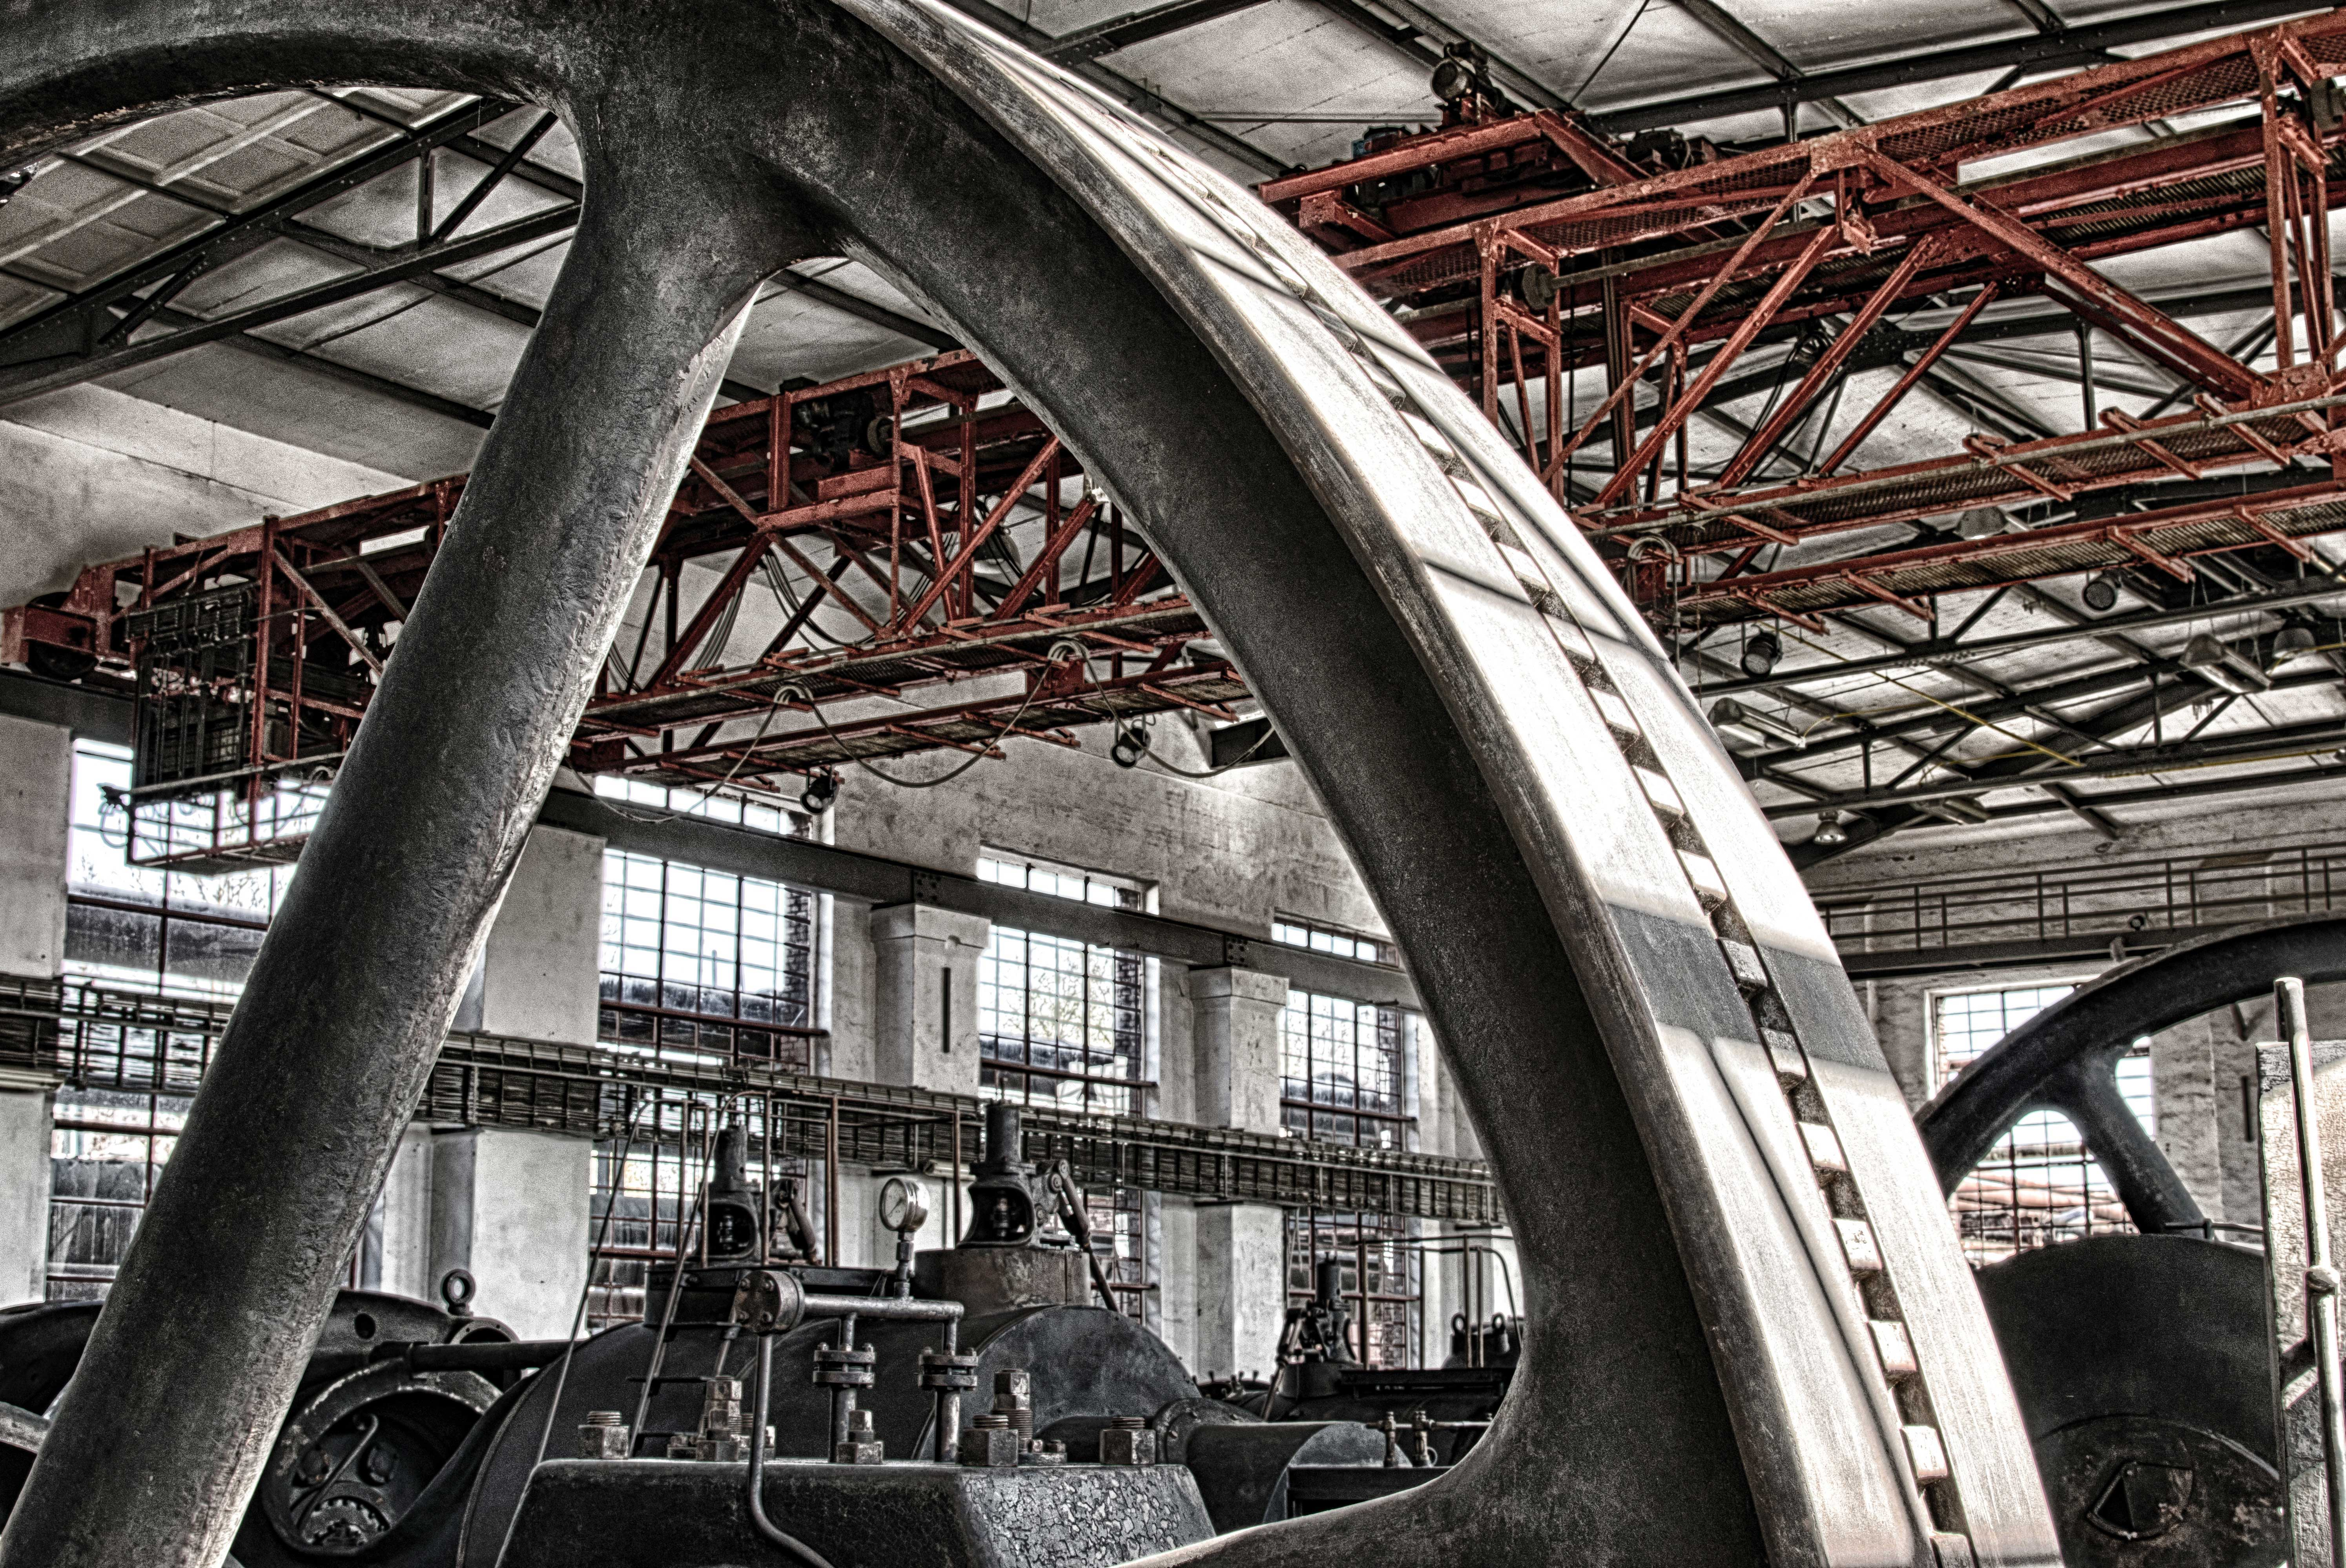 Industrial factory interior